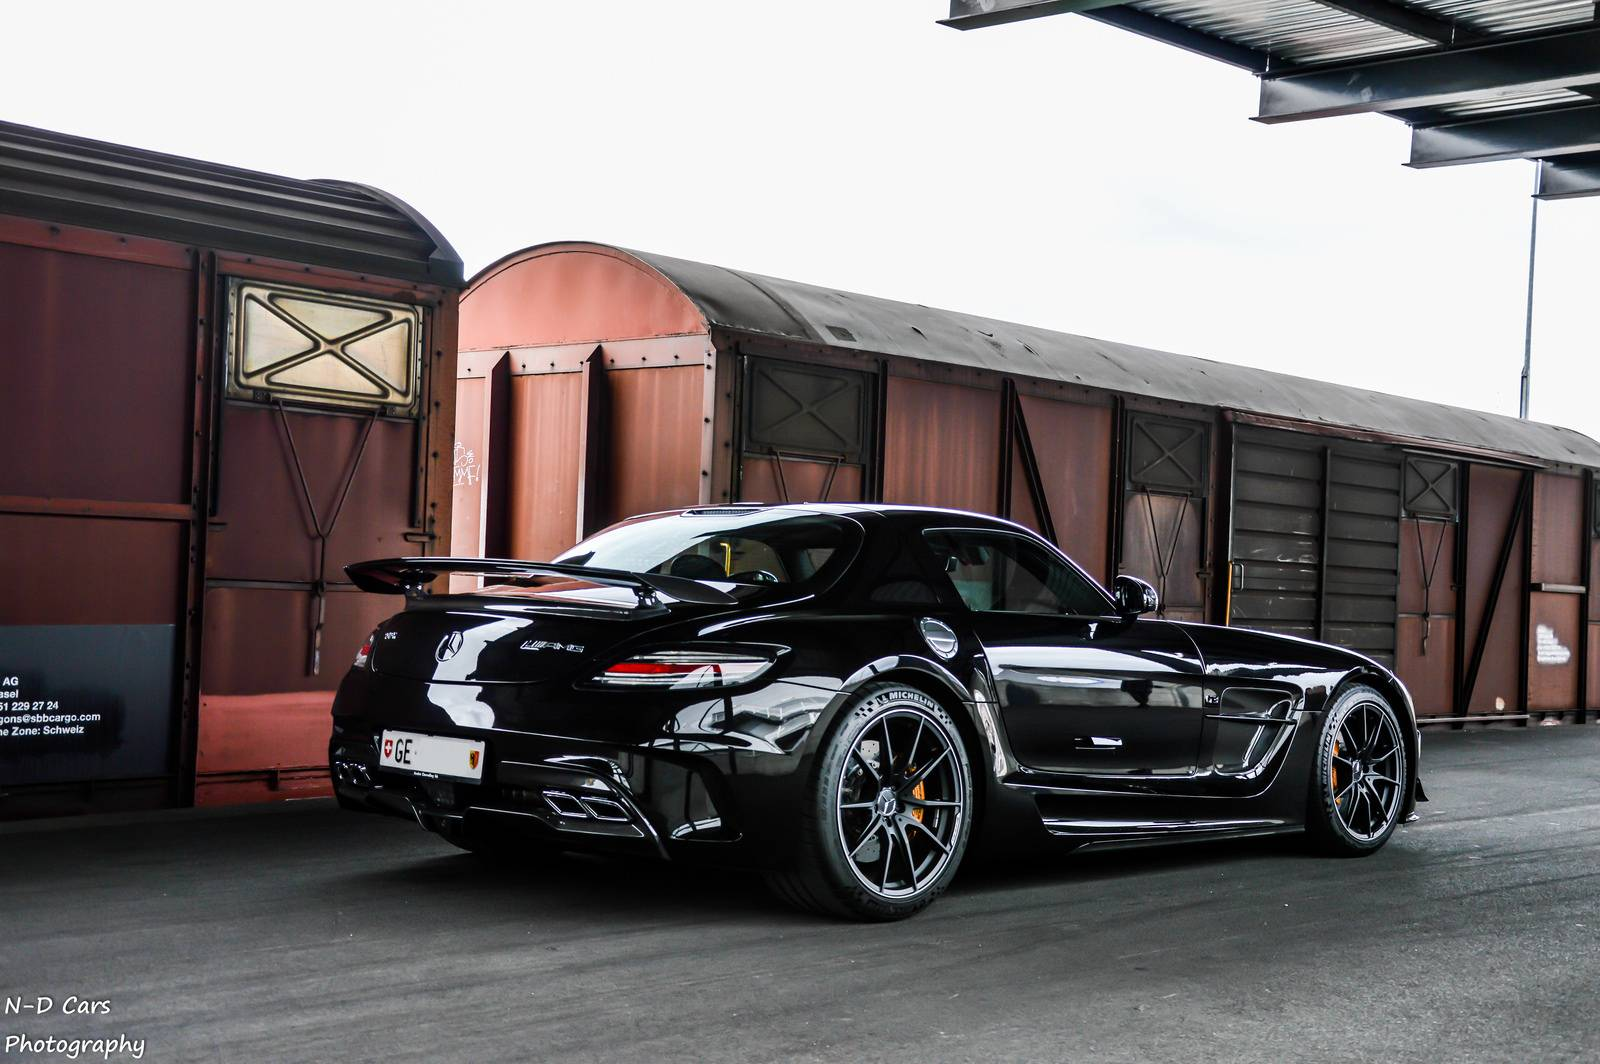 2014 mercedes benz sls amg black series preview 2017 for Mercedes benz sls amg black series